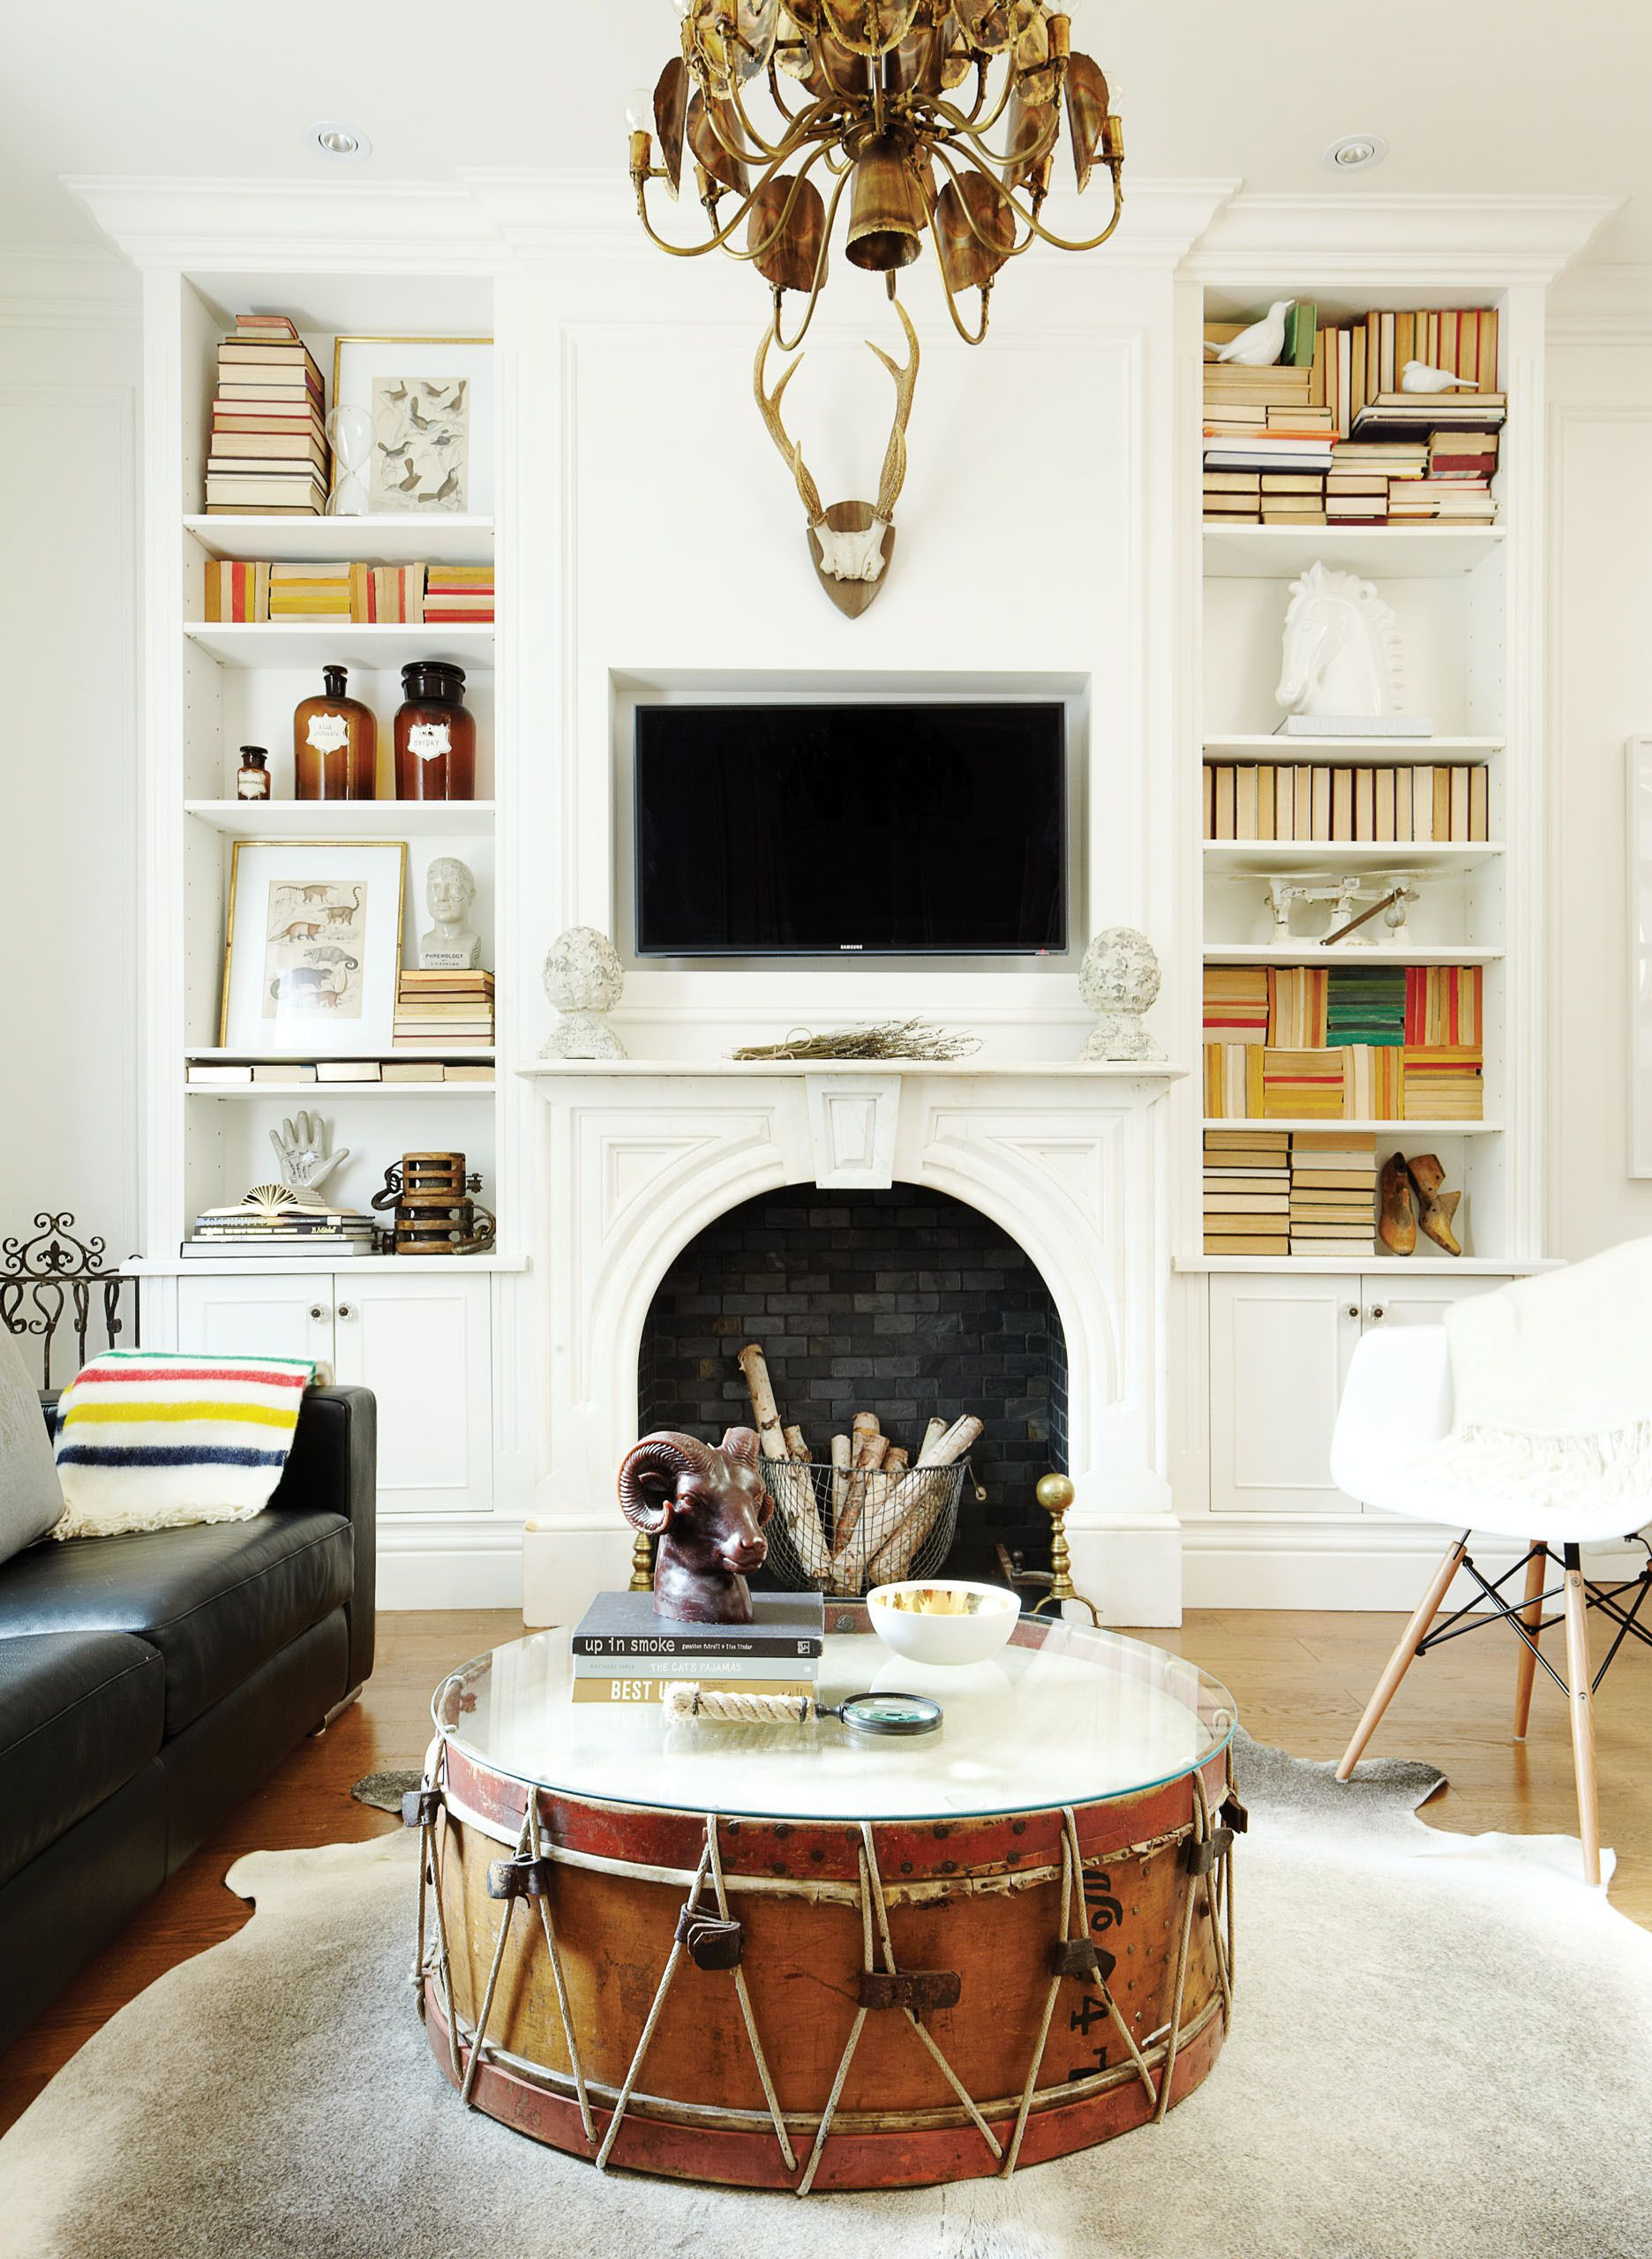 How to mix modern decor with vintage pieces | Book spine, Flea ...